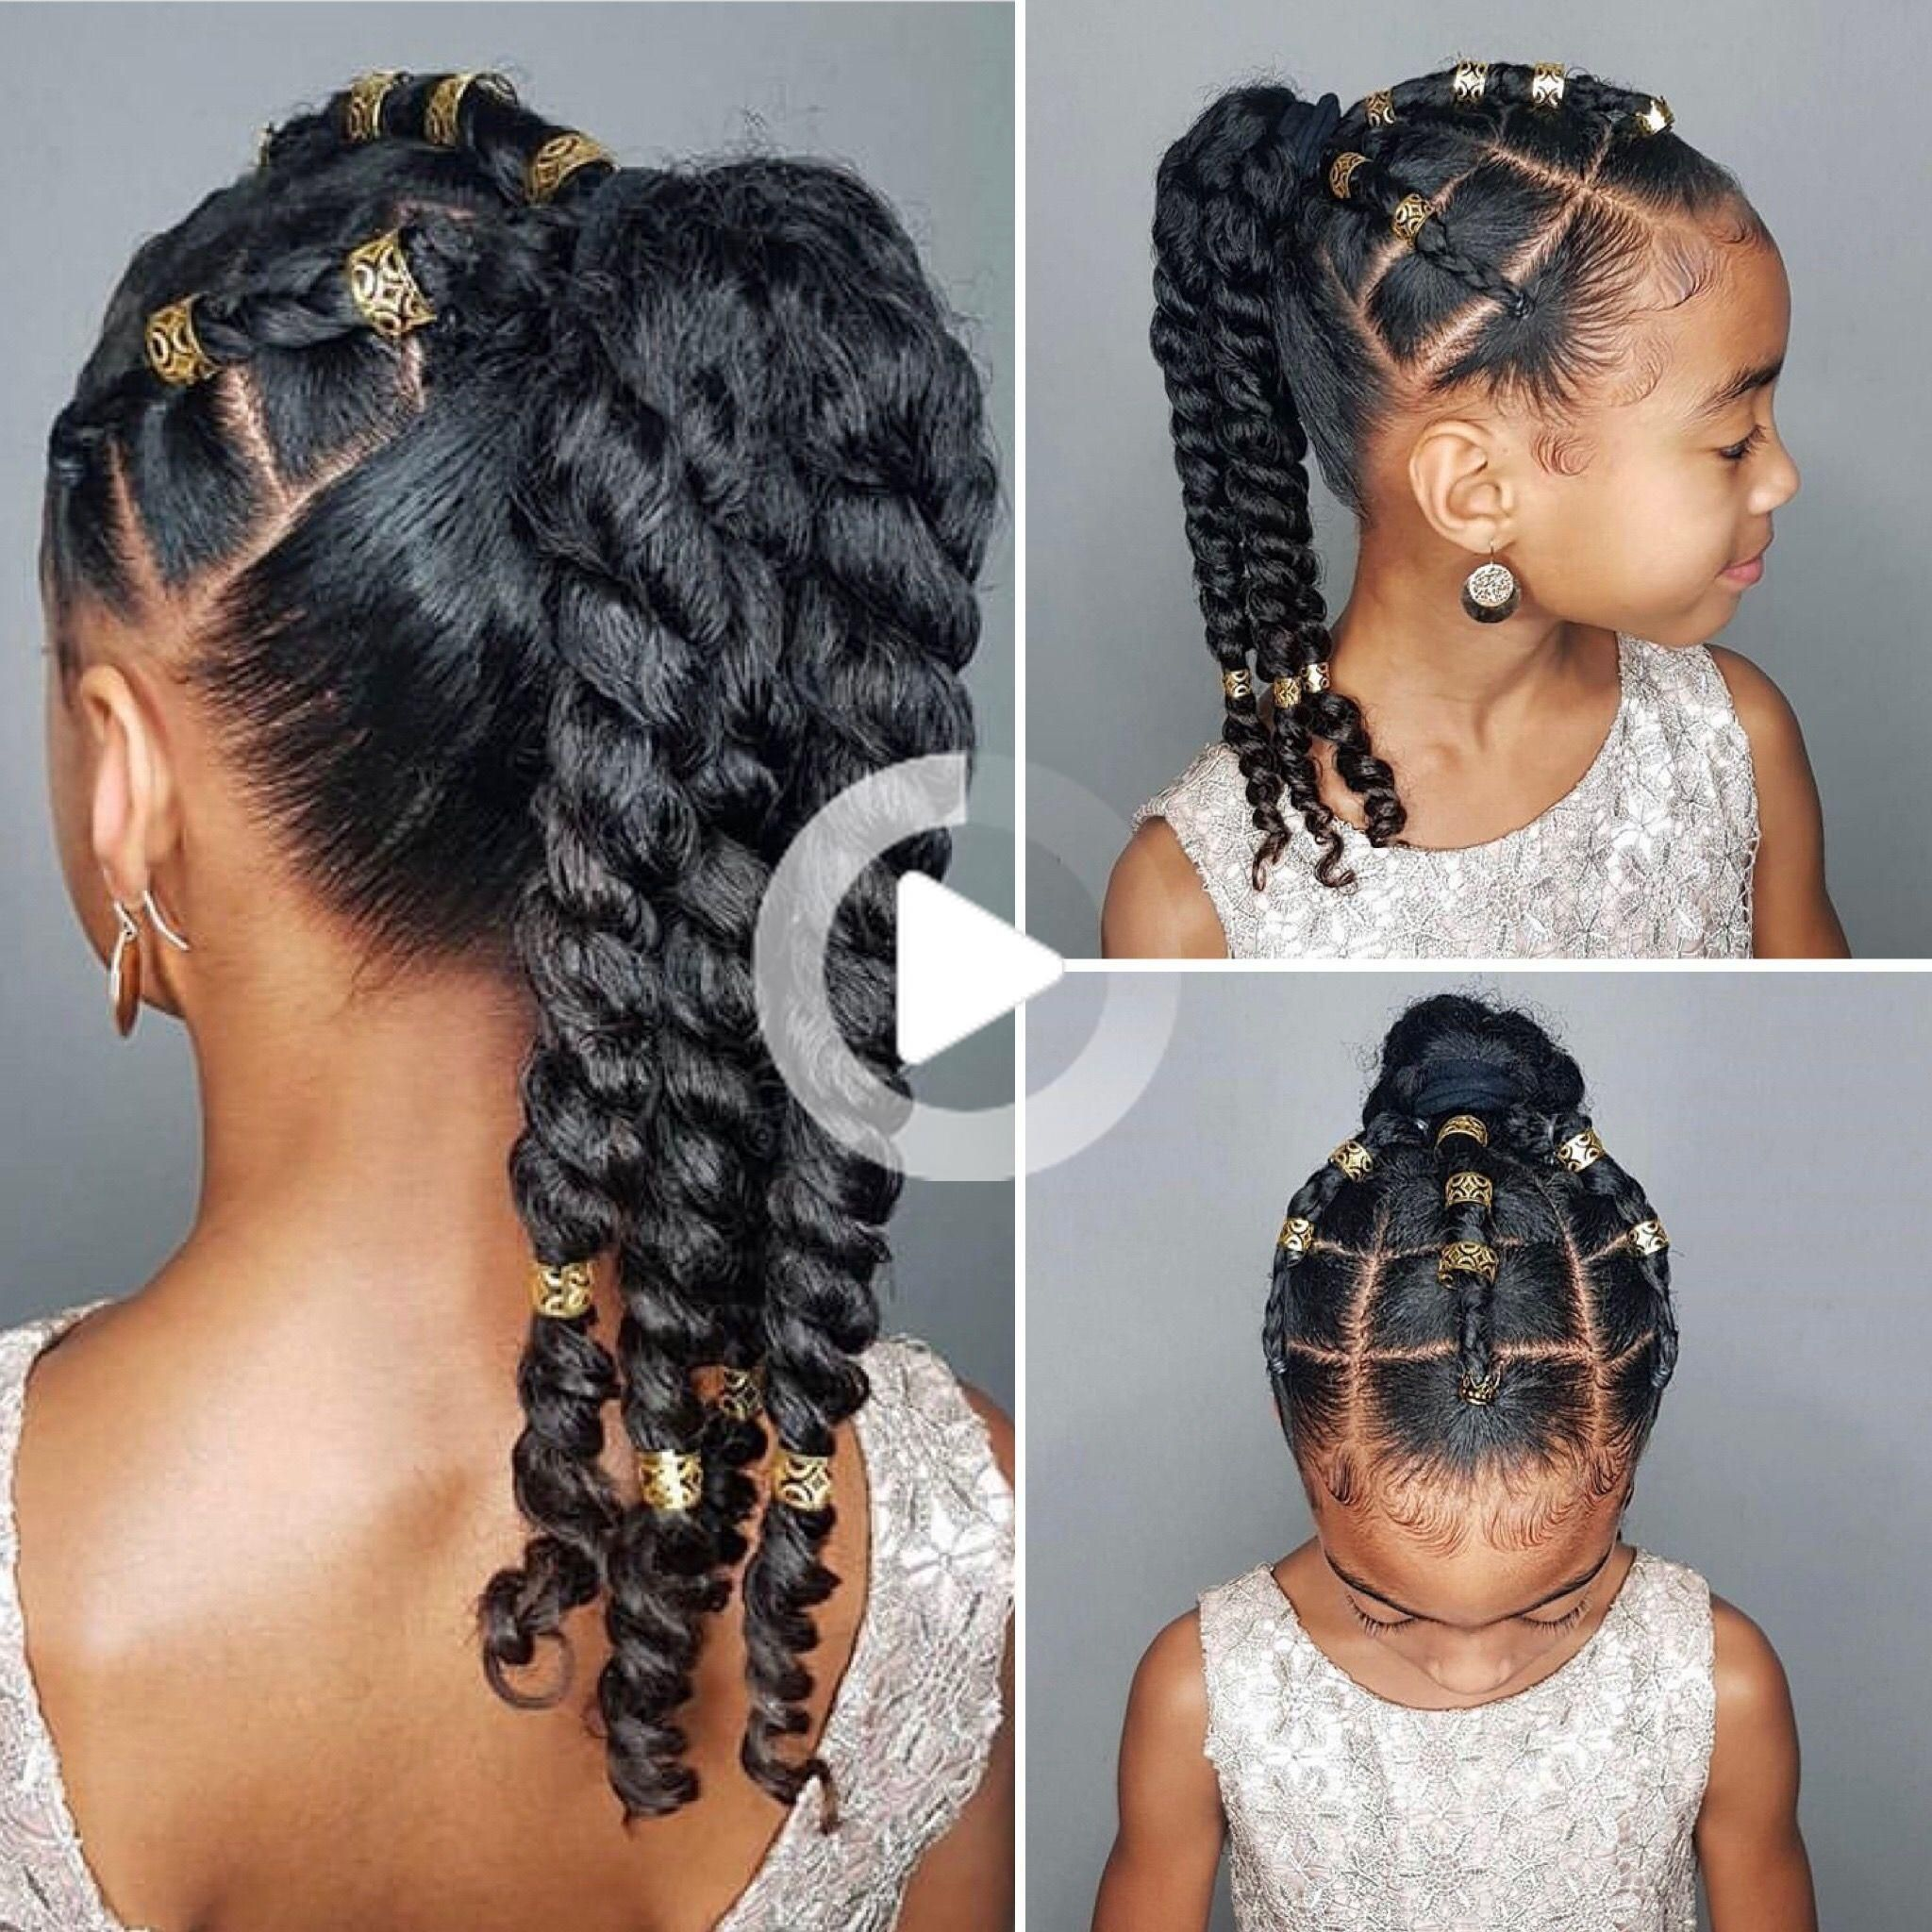 Coiffures Bouclees Bricolage Videos Cheveux Boucles Coiffures Bouclees Faciles En 2020 Coiffure Naturelle Coiffures Bouclees Faciles Tresses Pour Cheveux Courts